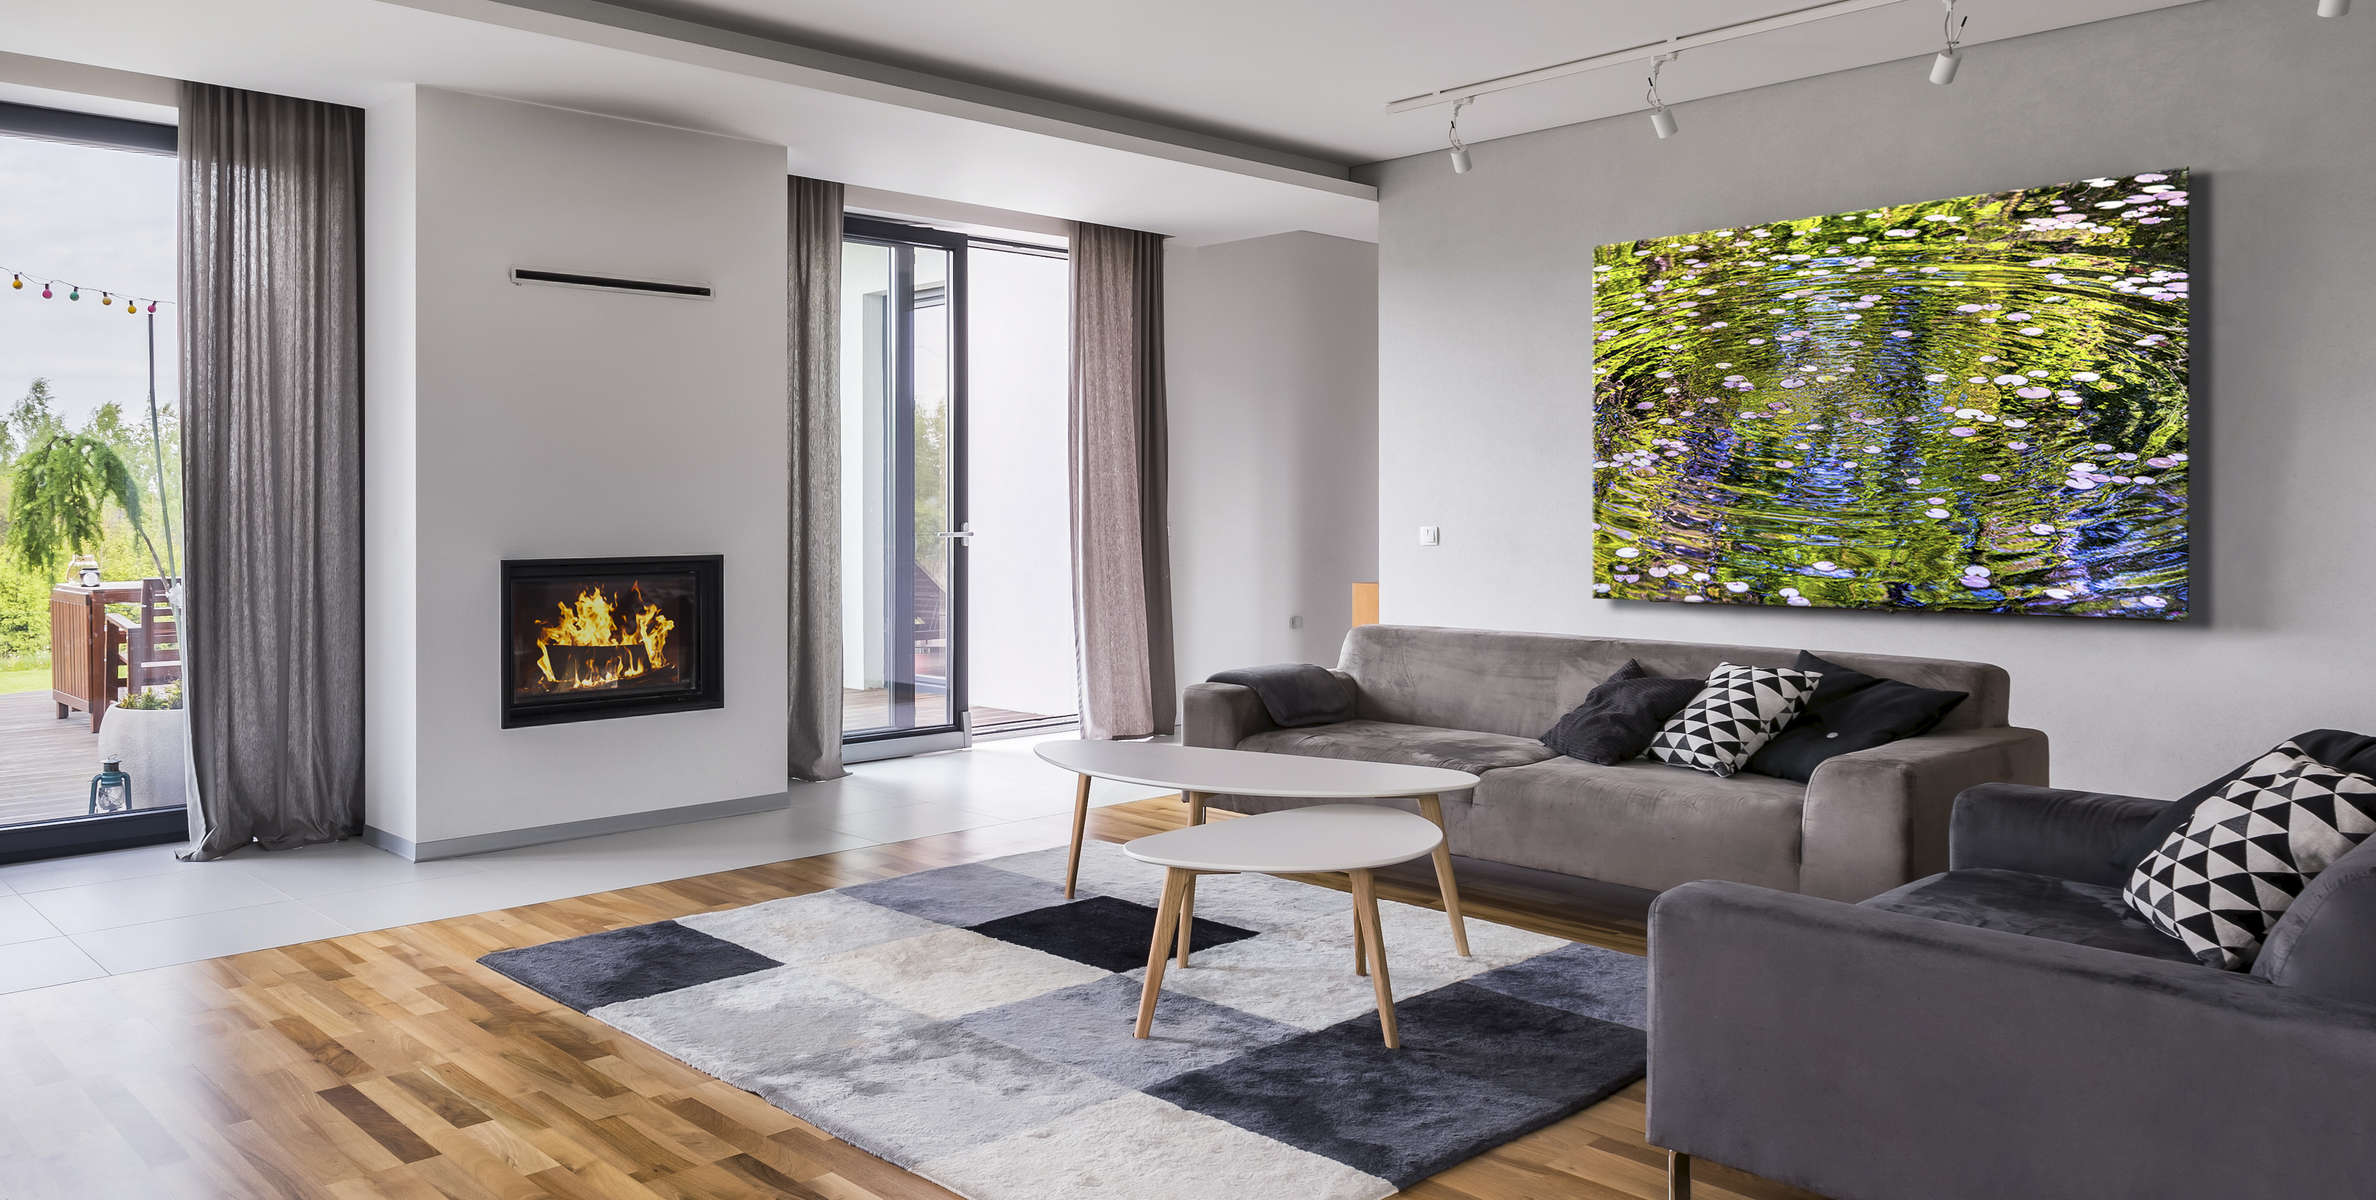 Spacious living room with floor panels, sofa and armchair